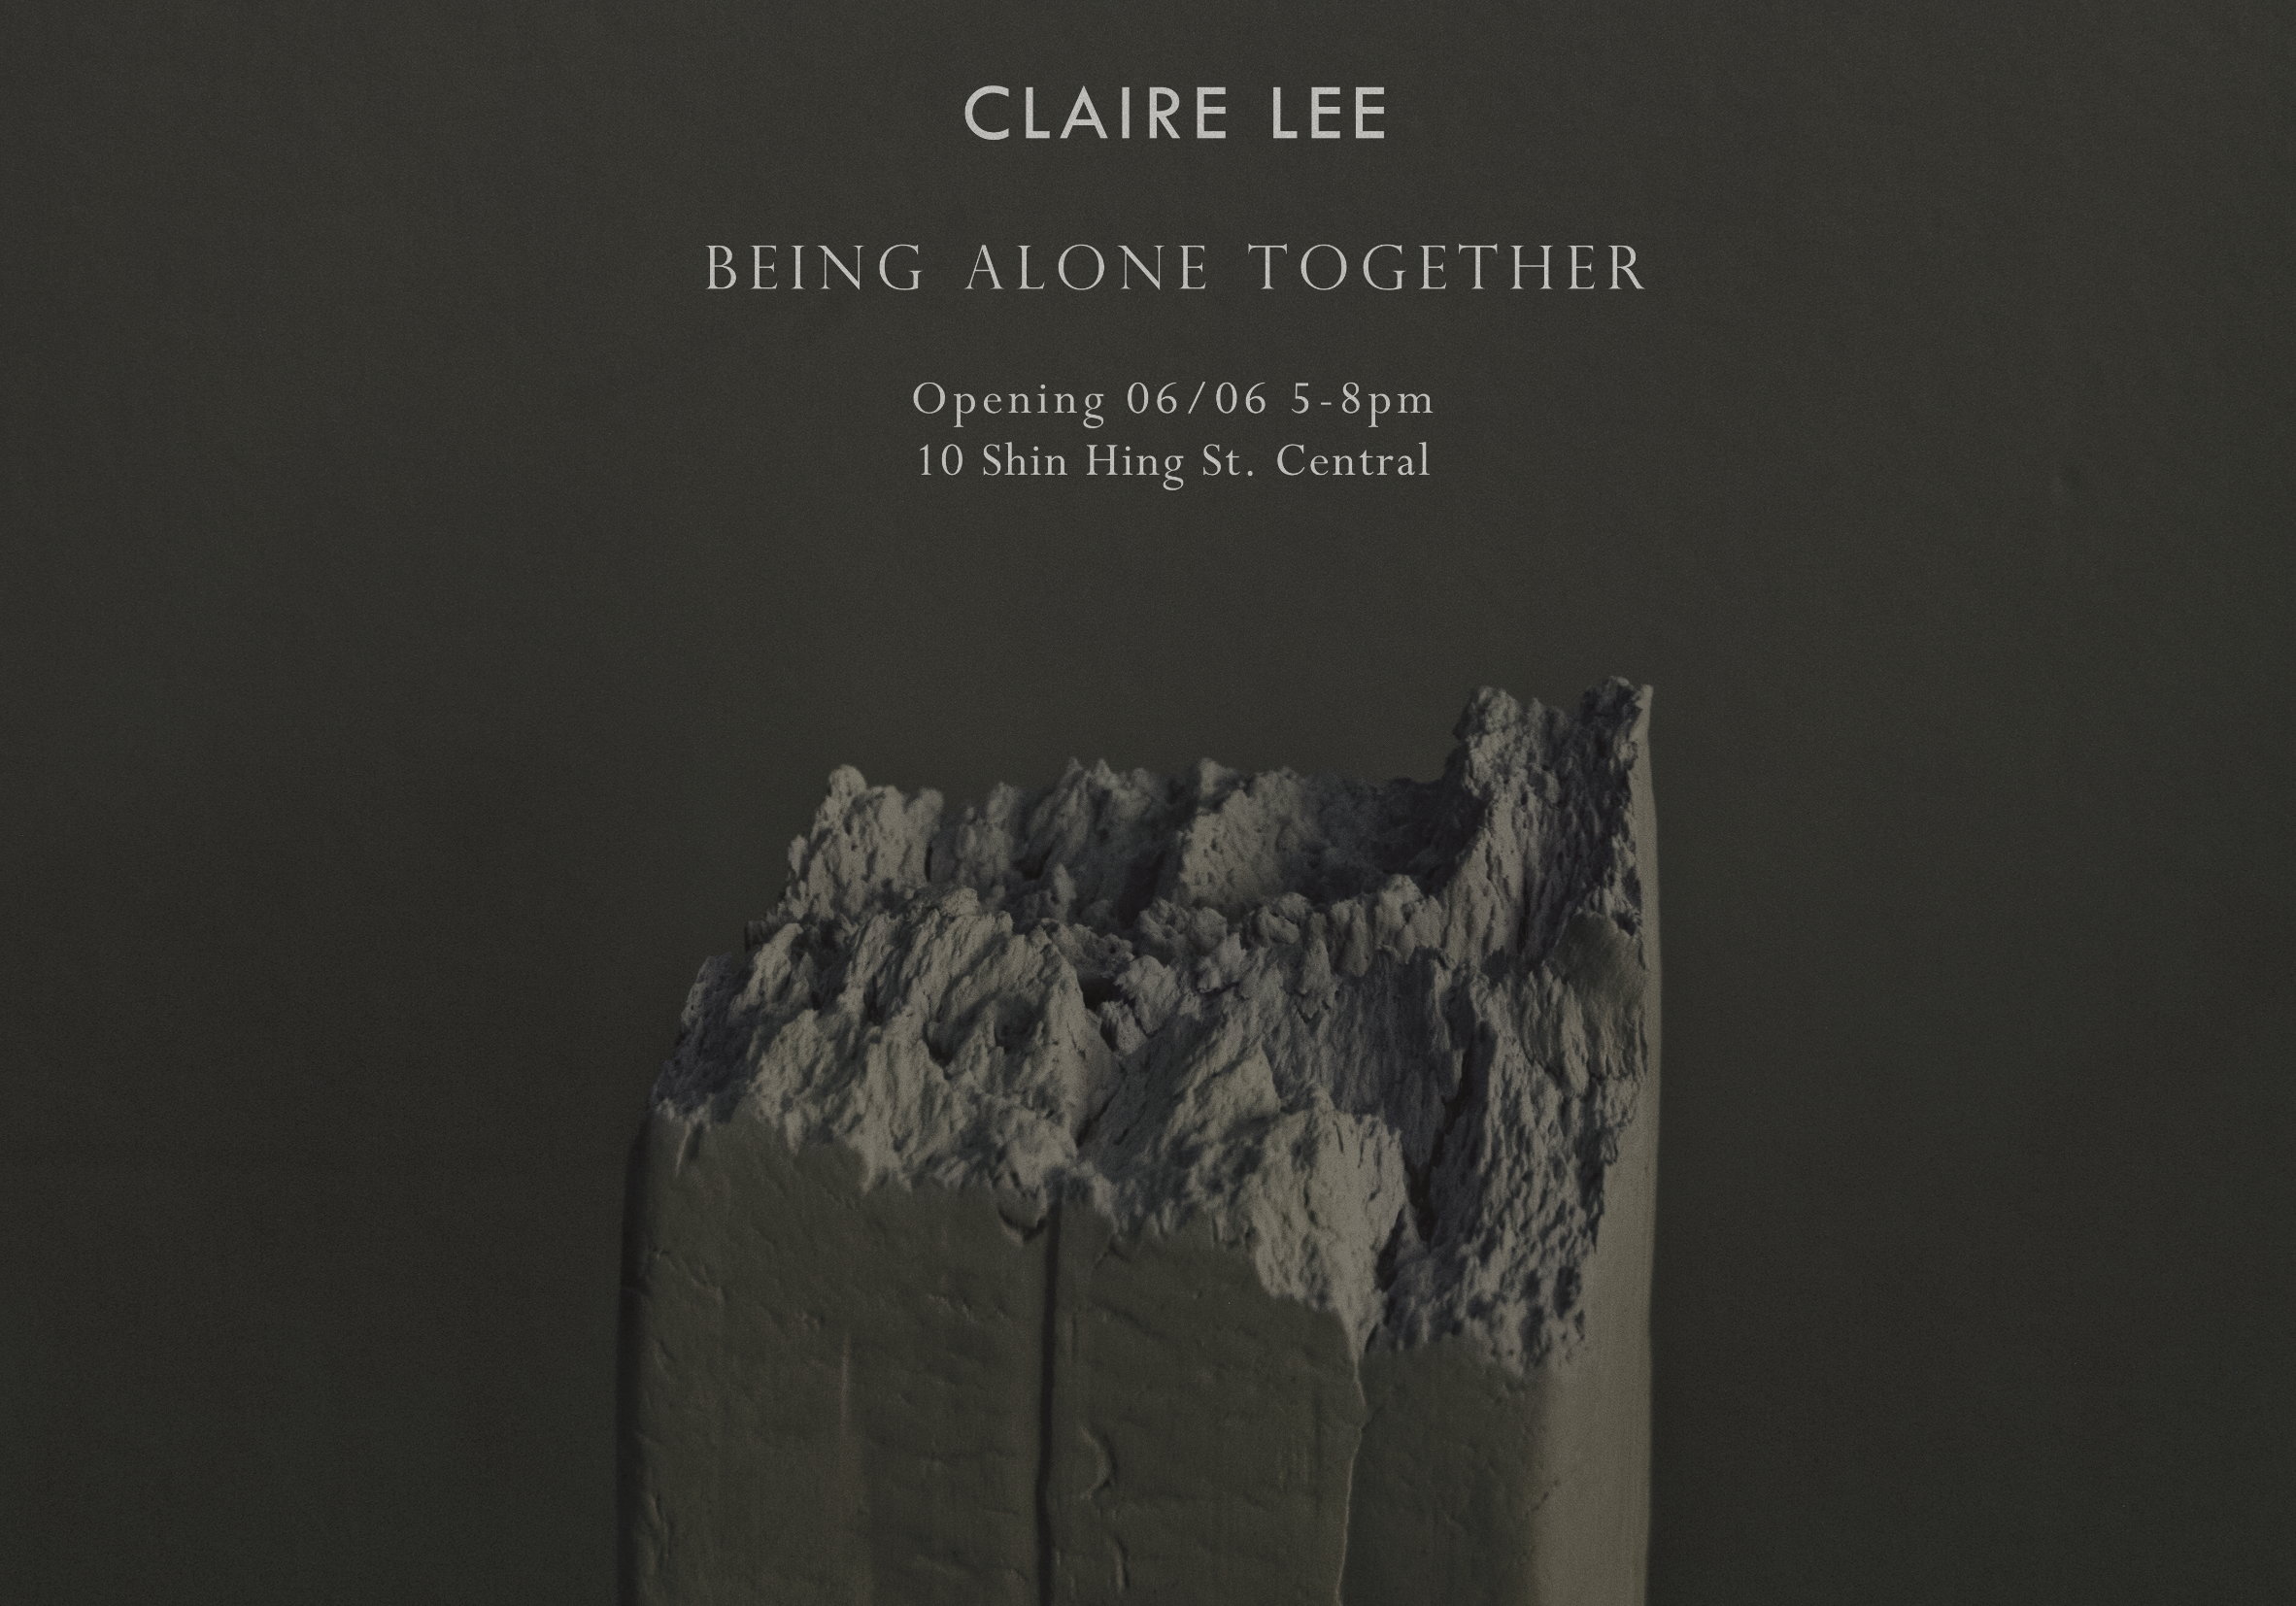 Alone We Break, but a Mountain We Make,   Claire Lee,     Artist-made clay object Giclee print on Hahnemuhle German Etching 417 x 594 mm, edition of 5 + 1 AP